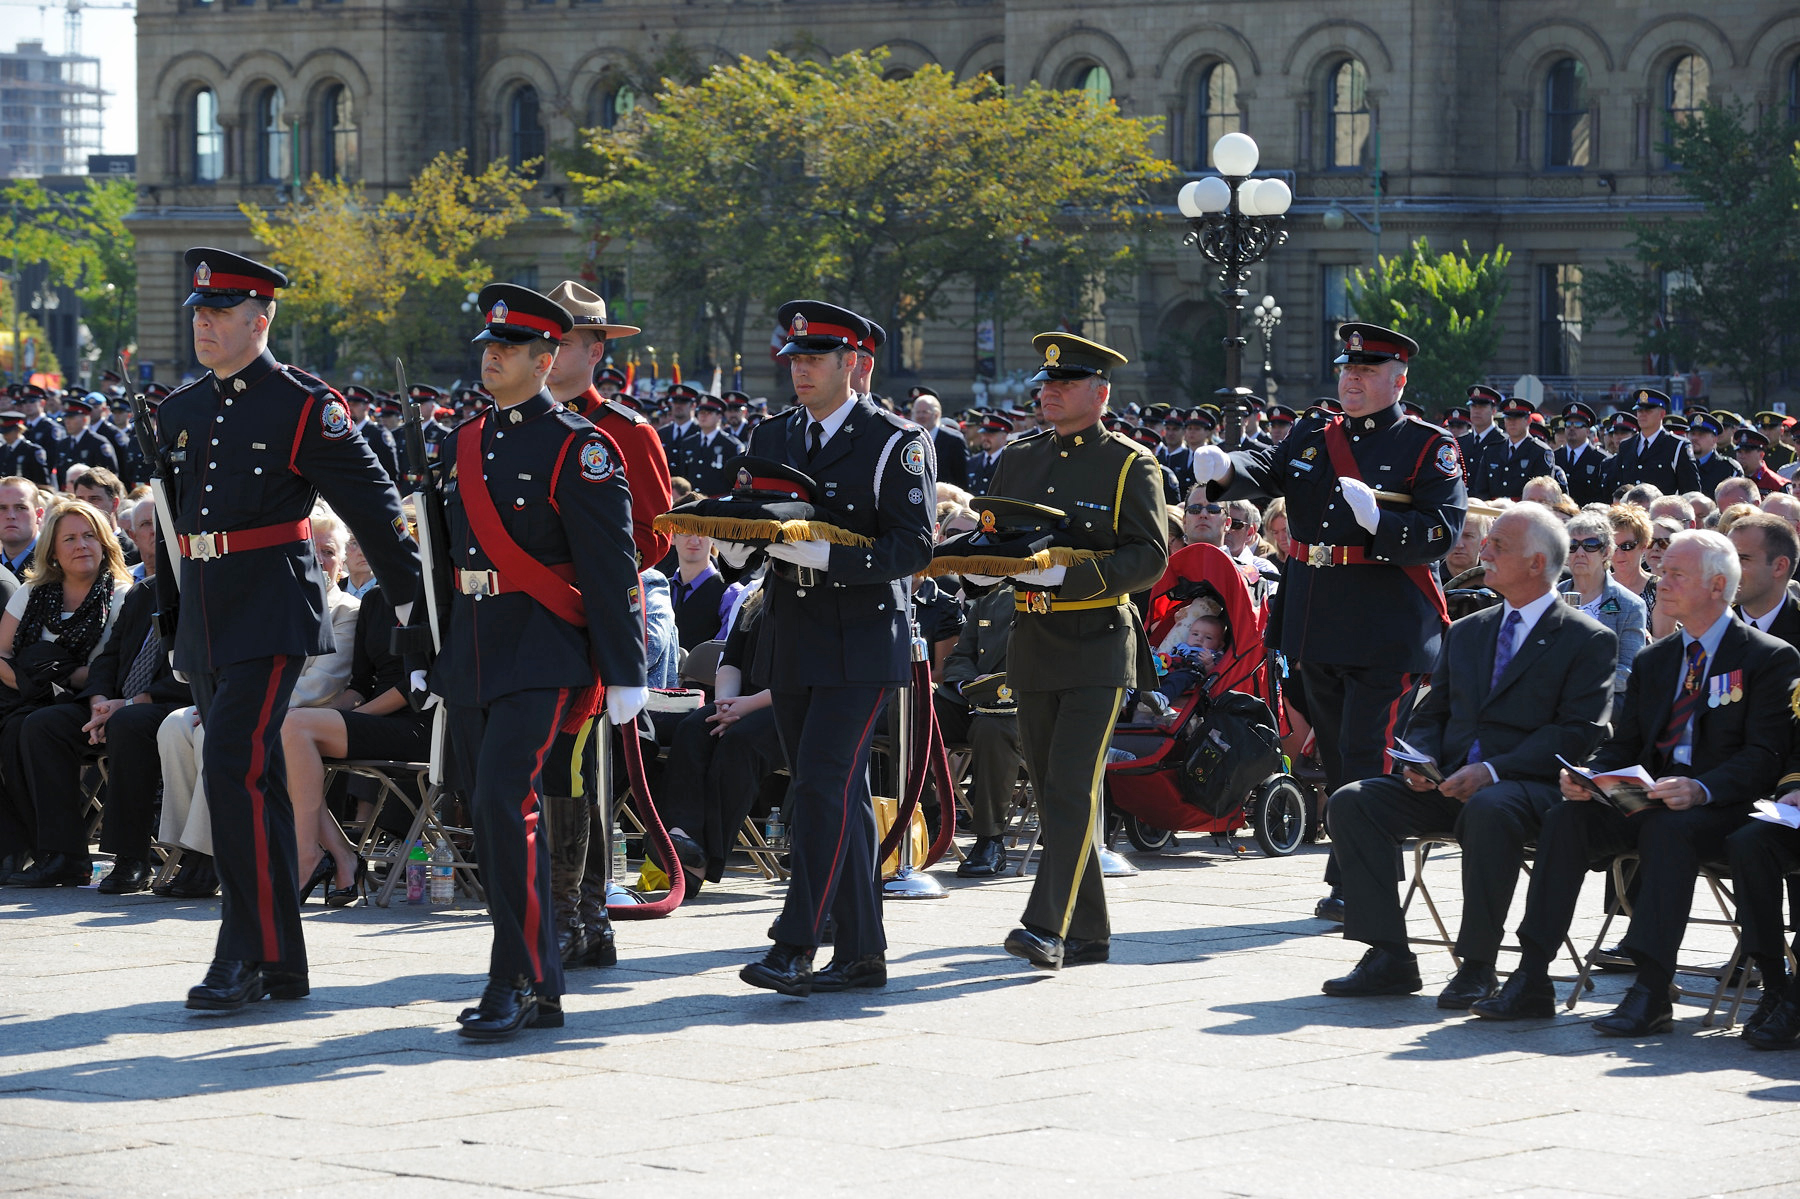 This year's memorial service honoured the following four officers whose lives were lost in the performance of their duties: Constable Garrett Styles, York Regional Police; Sergeant Ryan J. Russell, Toronto Police; Constable Sébastien Coghlan-Goyette, Sûreté du Québec; and Constable Michael B. Potvin, Royal Canadian Mounted Police.